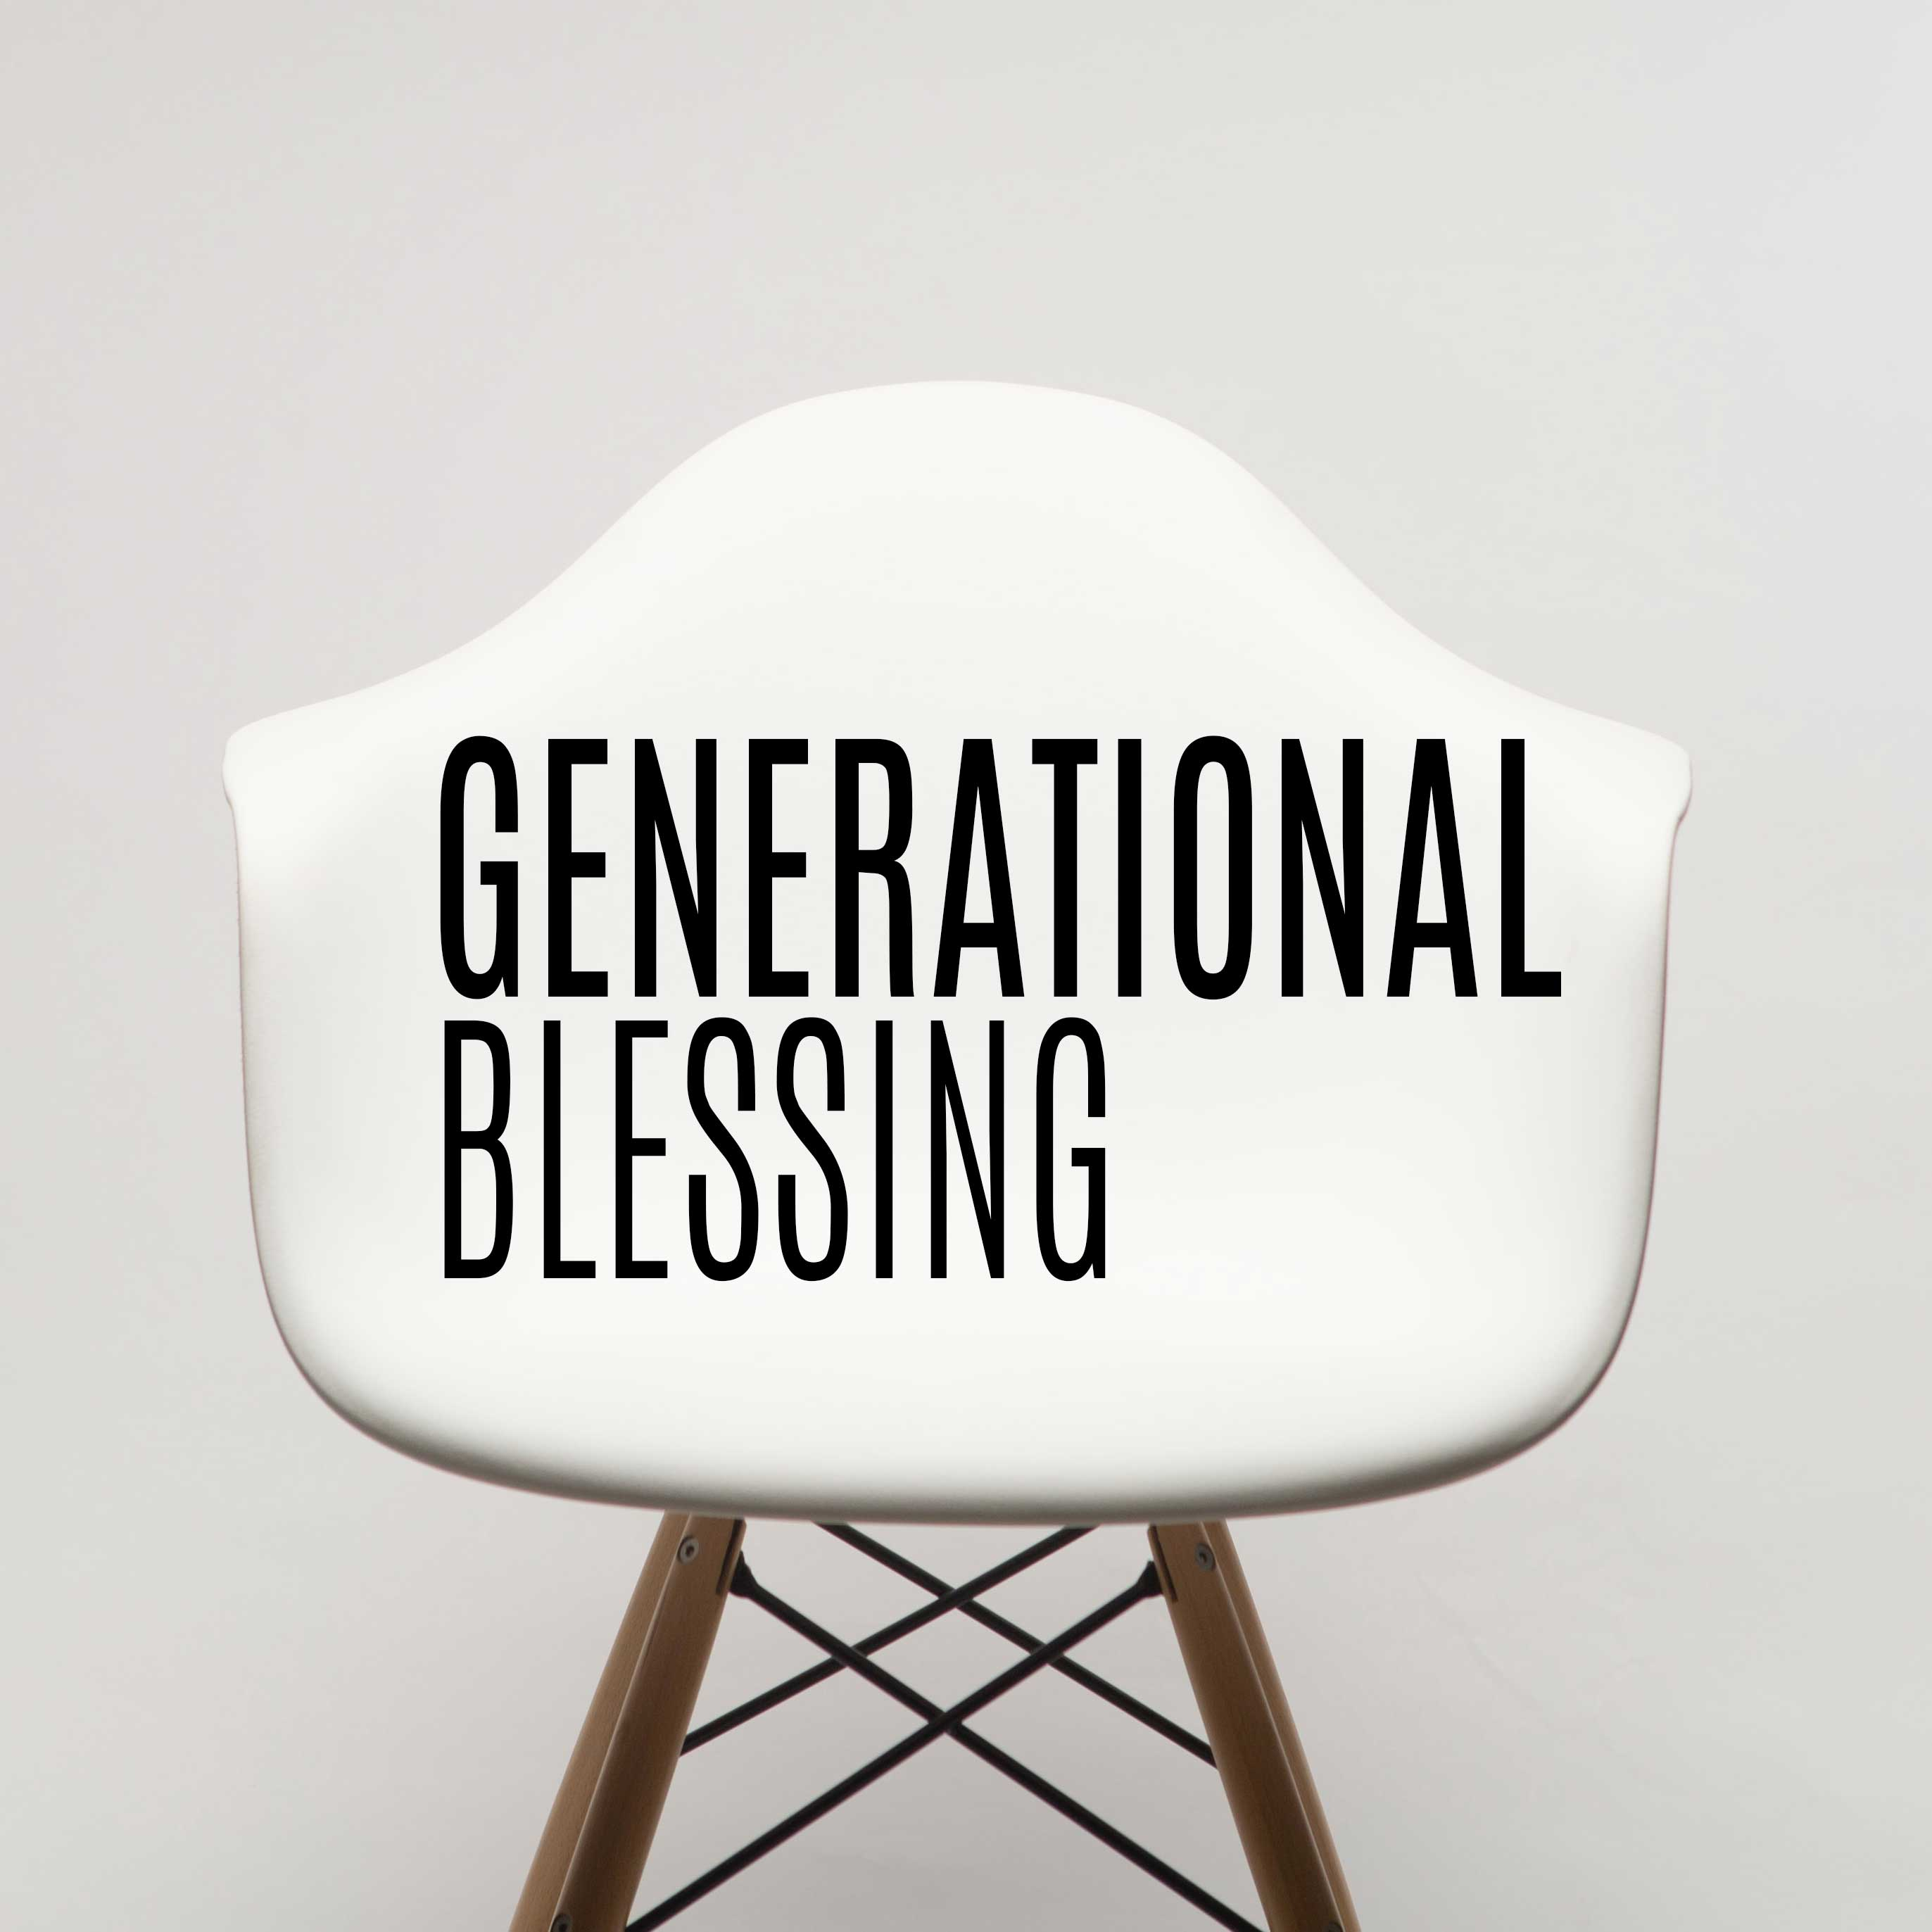 generational-blessing